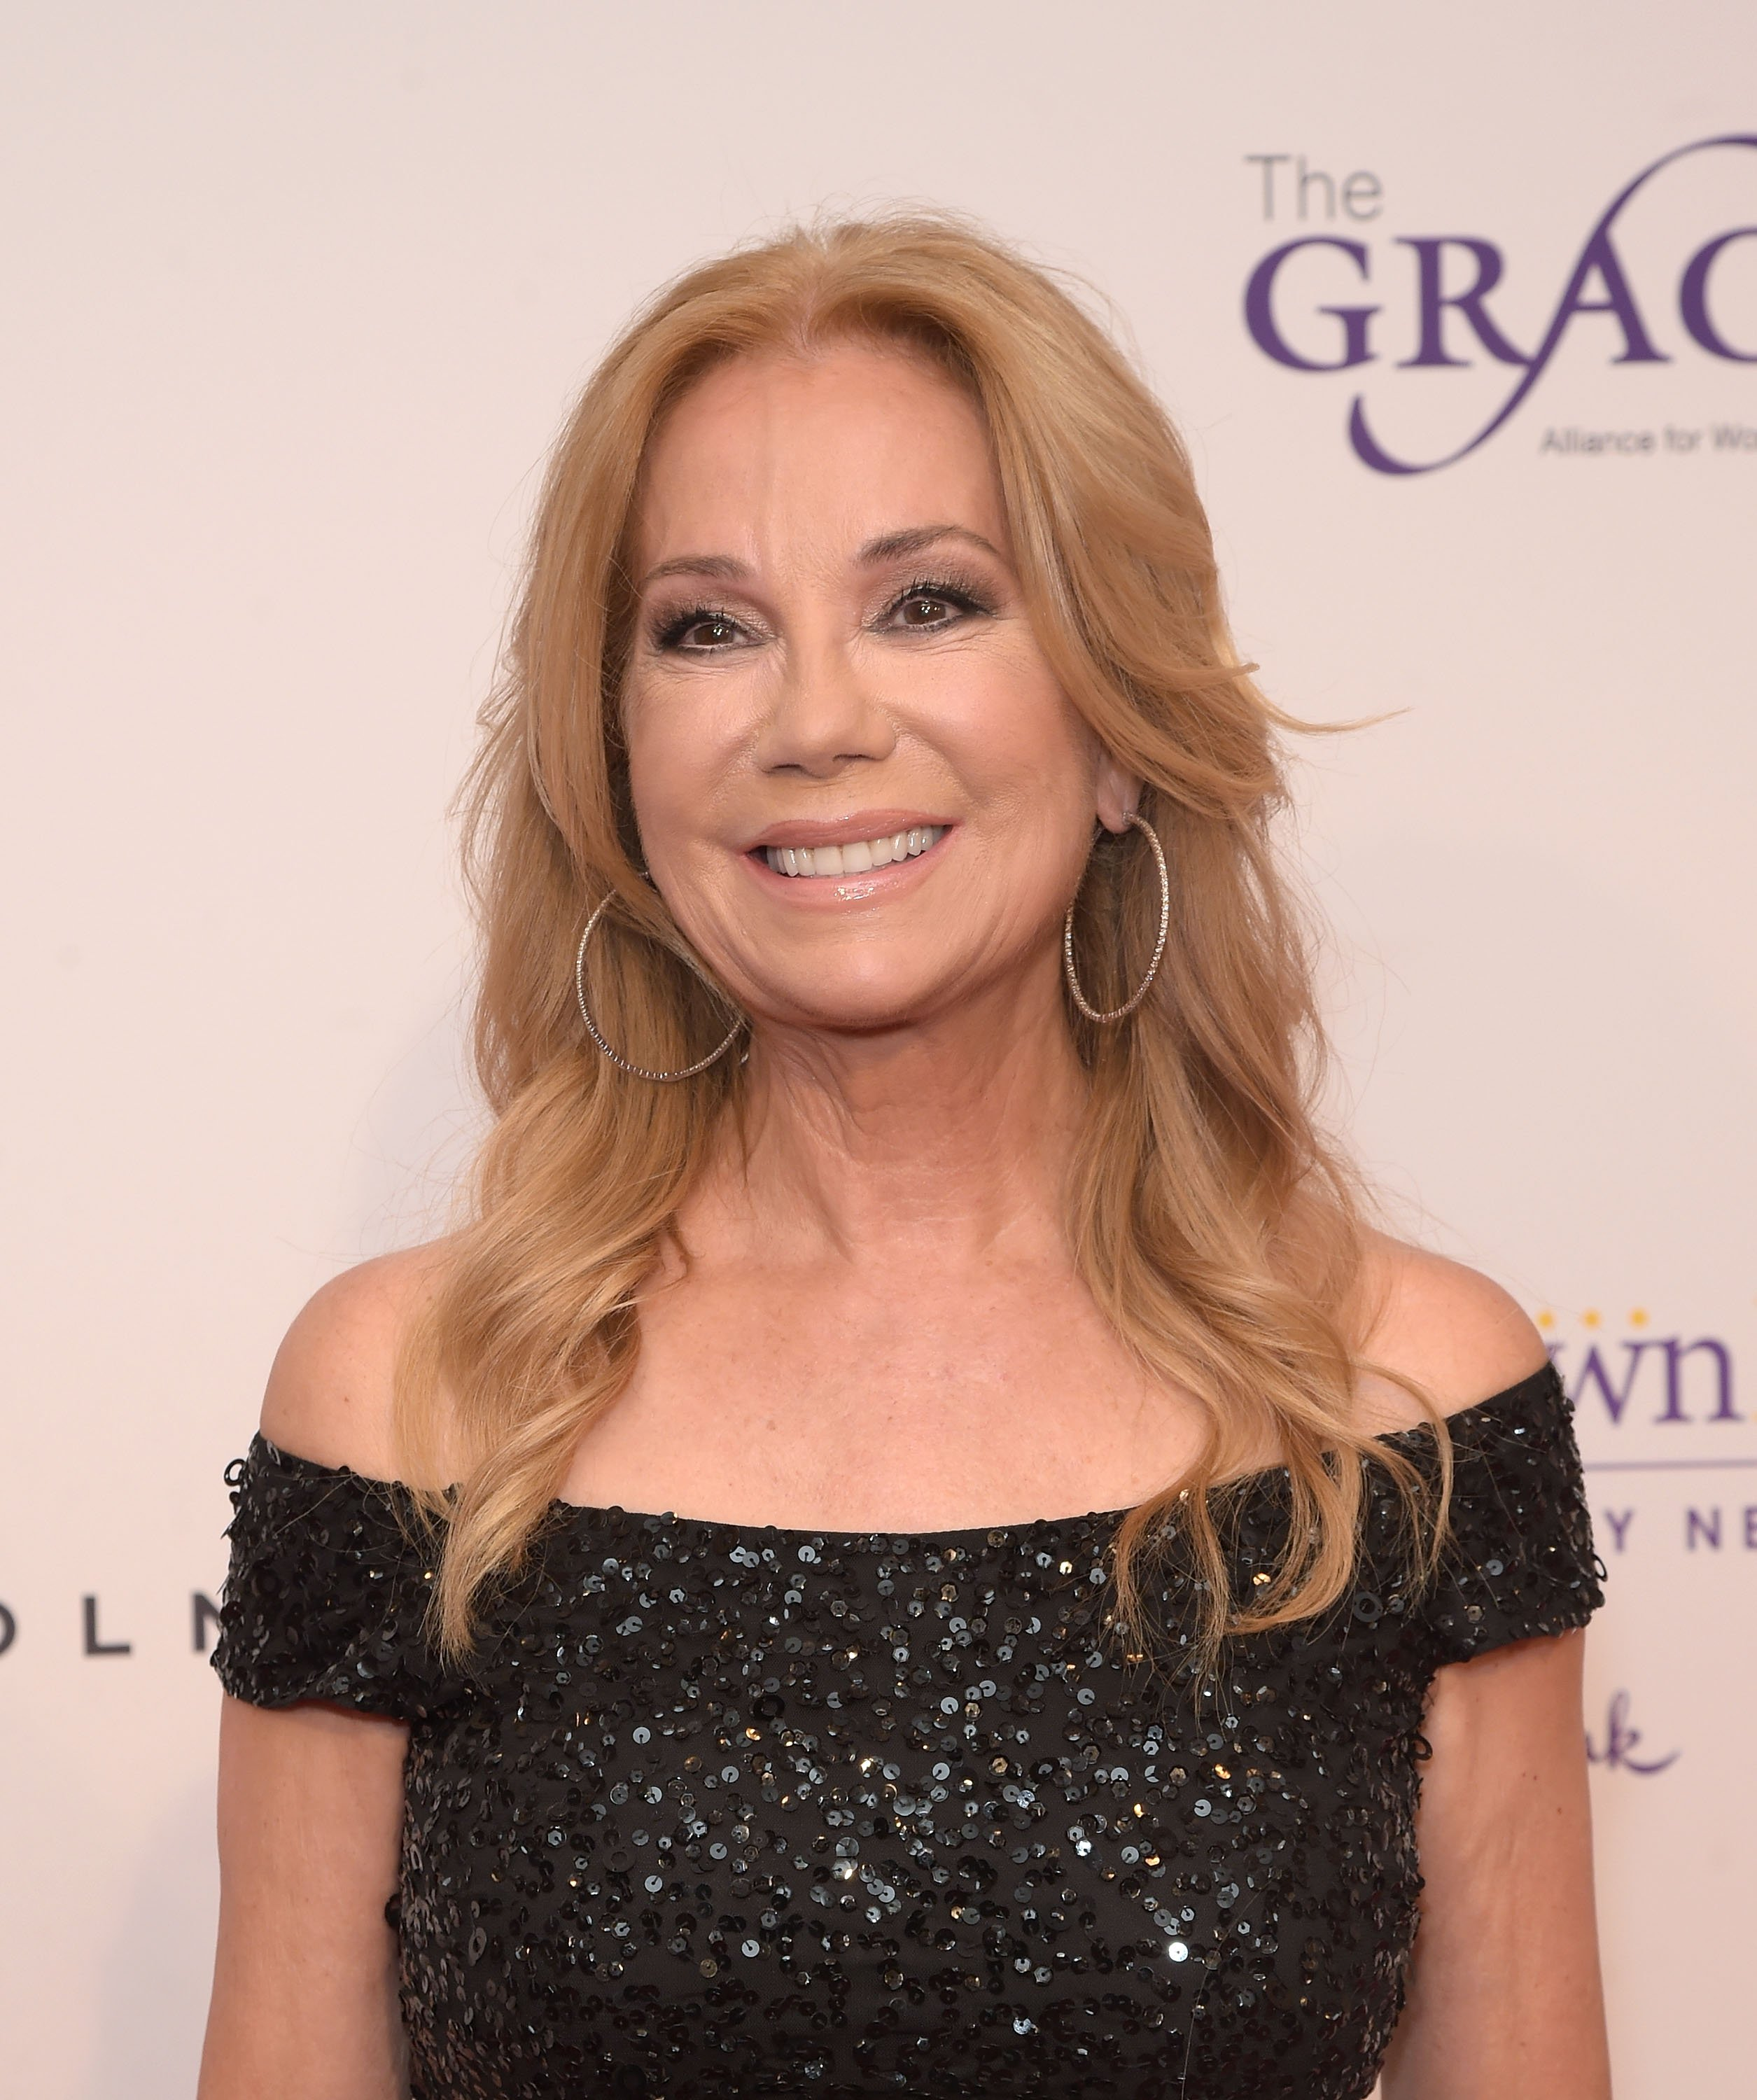 Kathie Lee Gifford attends the 41st Annual Gracie Awards Gala at the Beverly Wilshire Four Seasons Hotel on May 24, 2016 | Photo: GettyImages